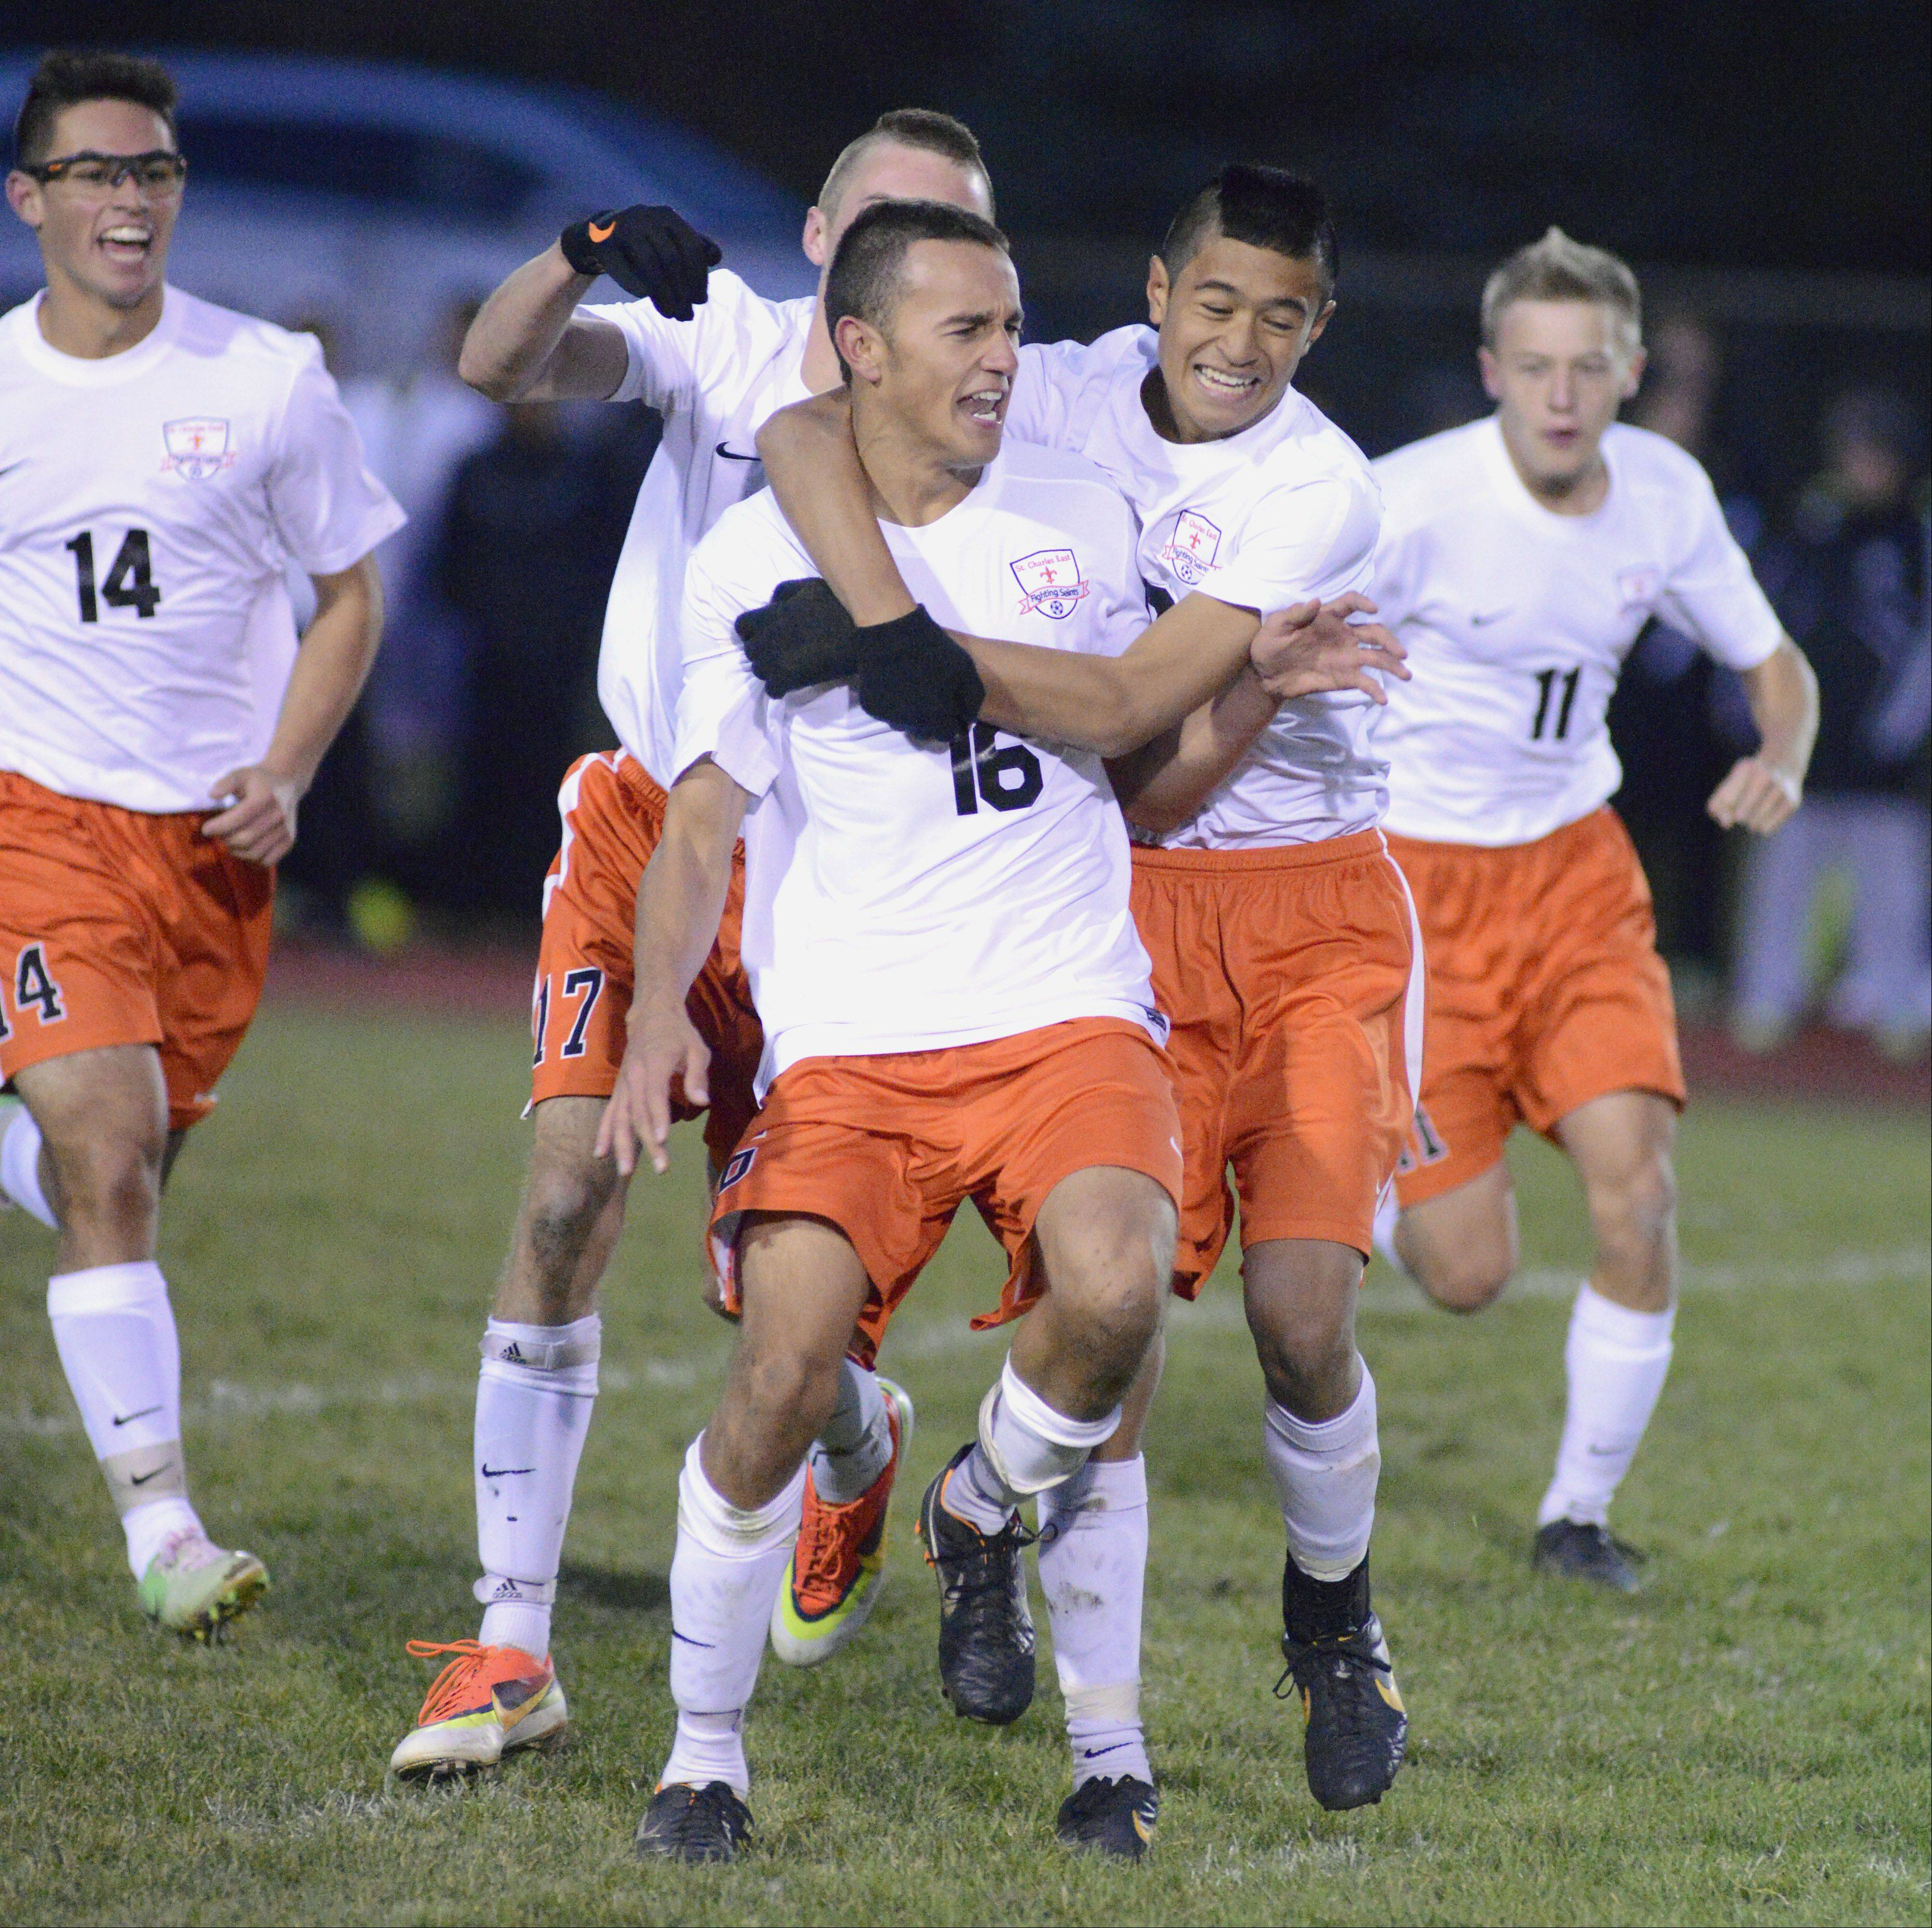 St. Charles East's Jordan Moore (16) gets a hug from teammate Zach Manibog after scoring the second goal for the Saints in the second half on Wednesday, October 23. Manibog scored the first goal of the game.